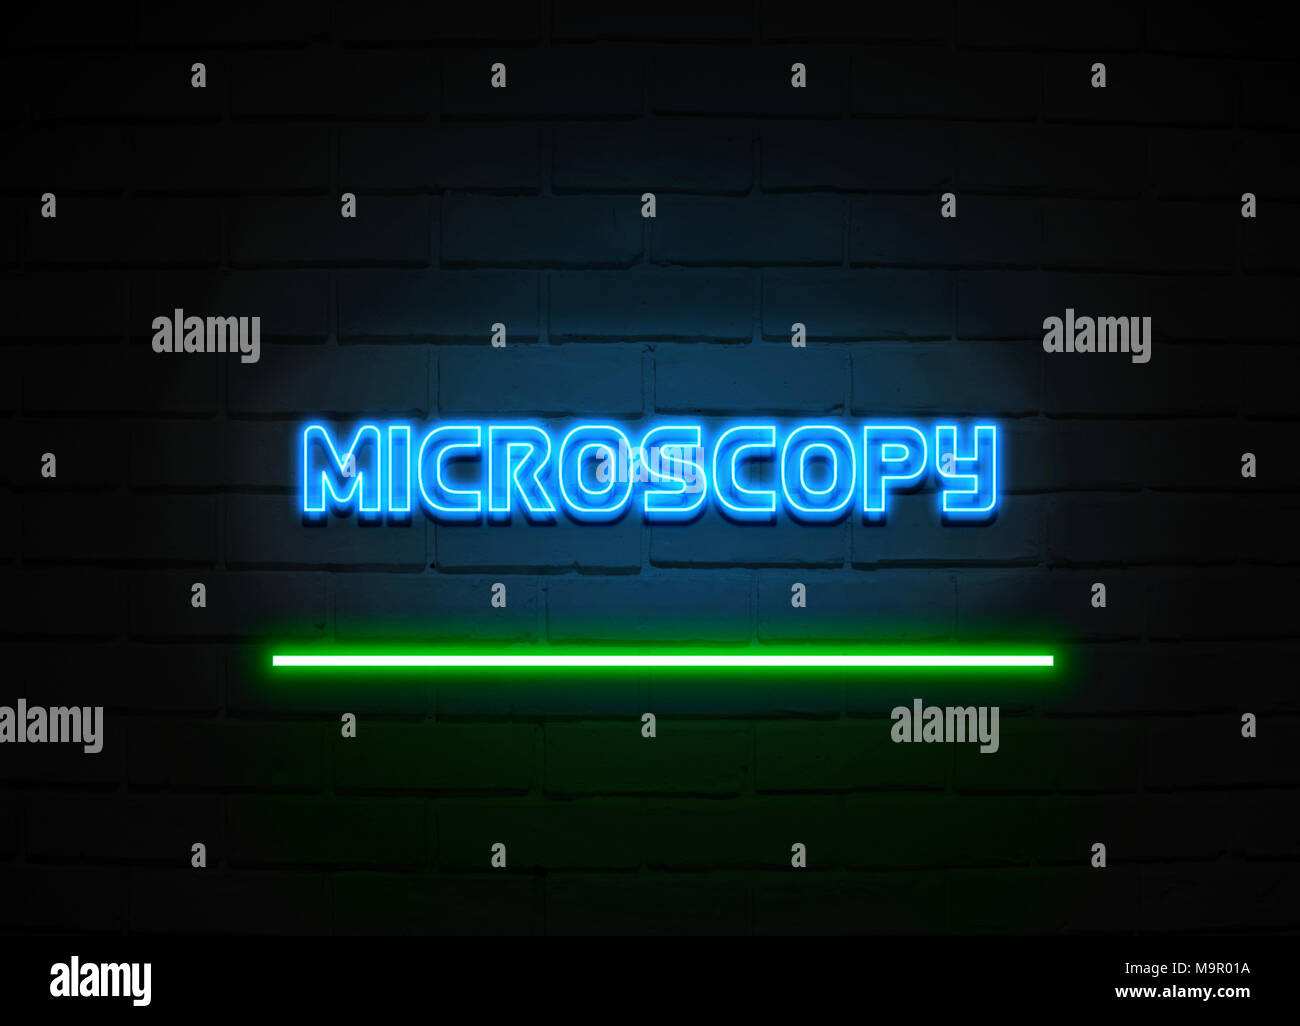 Microscopy neon sign - Glowing Neon Sign on brickwall wall - 3D rendered royalty free stock illustration. - Stock Image